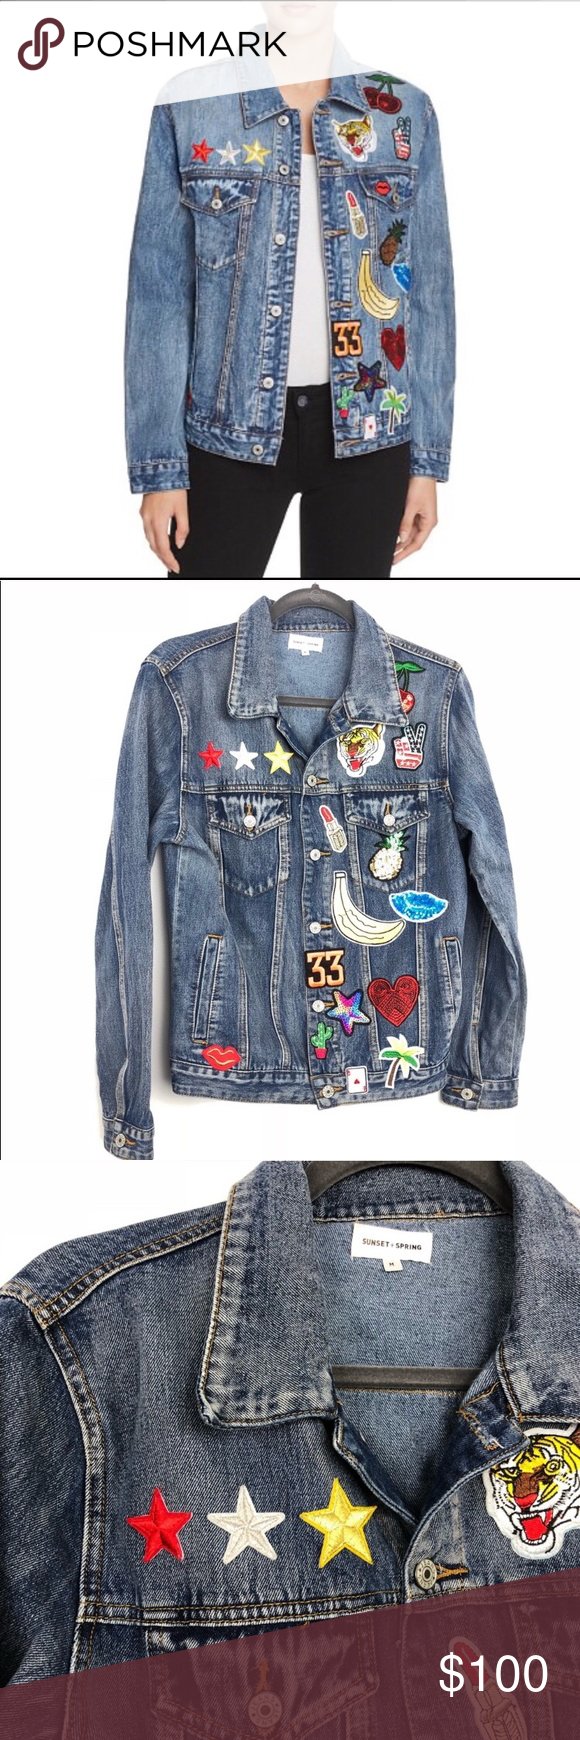 334072f7ad8b2 Sunset + Spring Denim Jacket Denim Jacket with colorful patches. Size M.  Sunset+Spring Jackets & Coats Jean Jackets